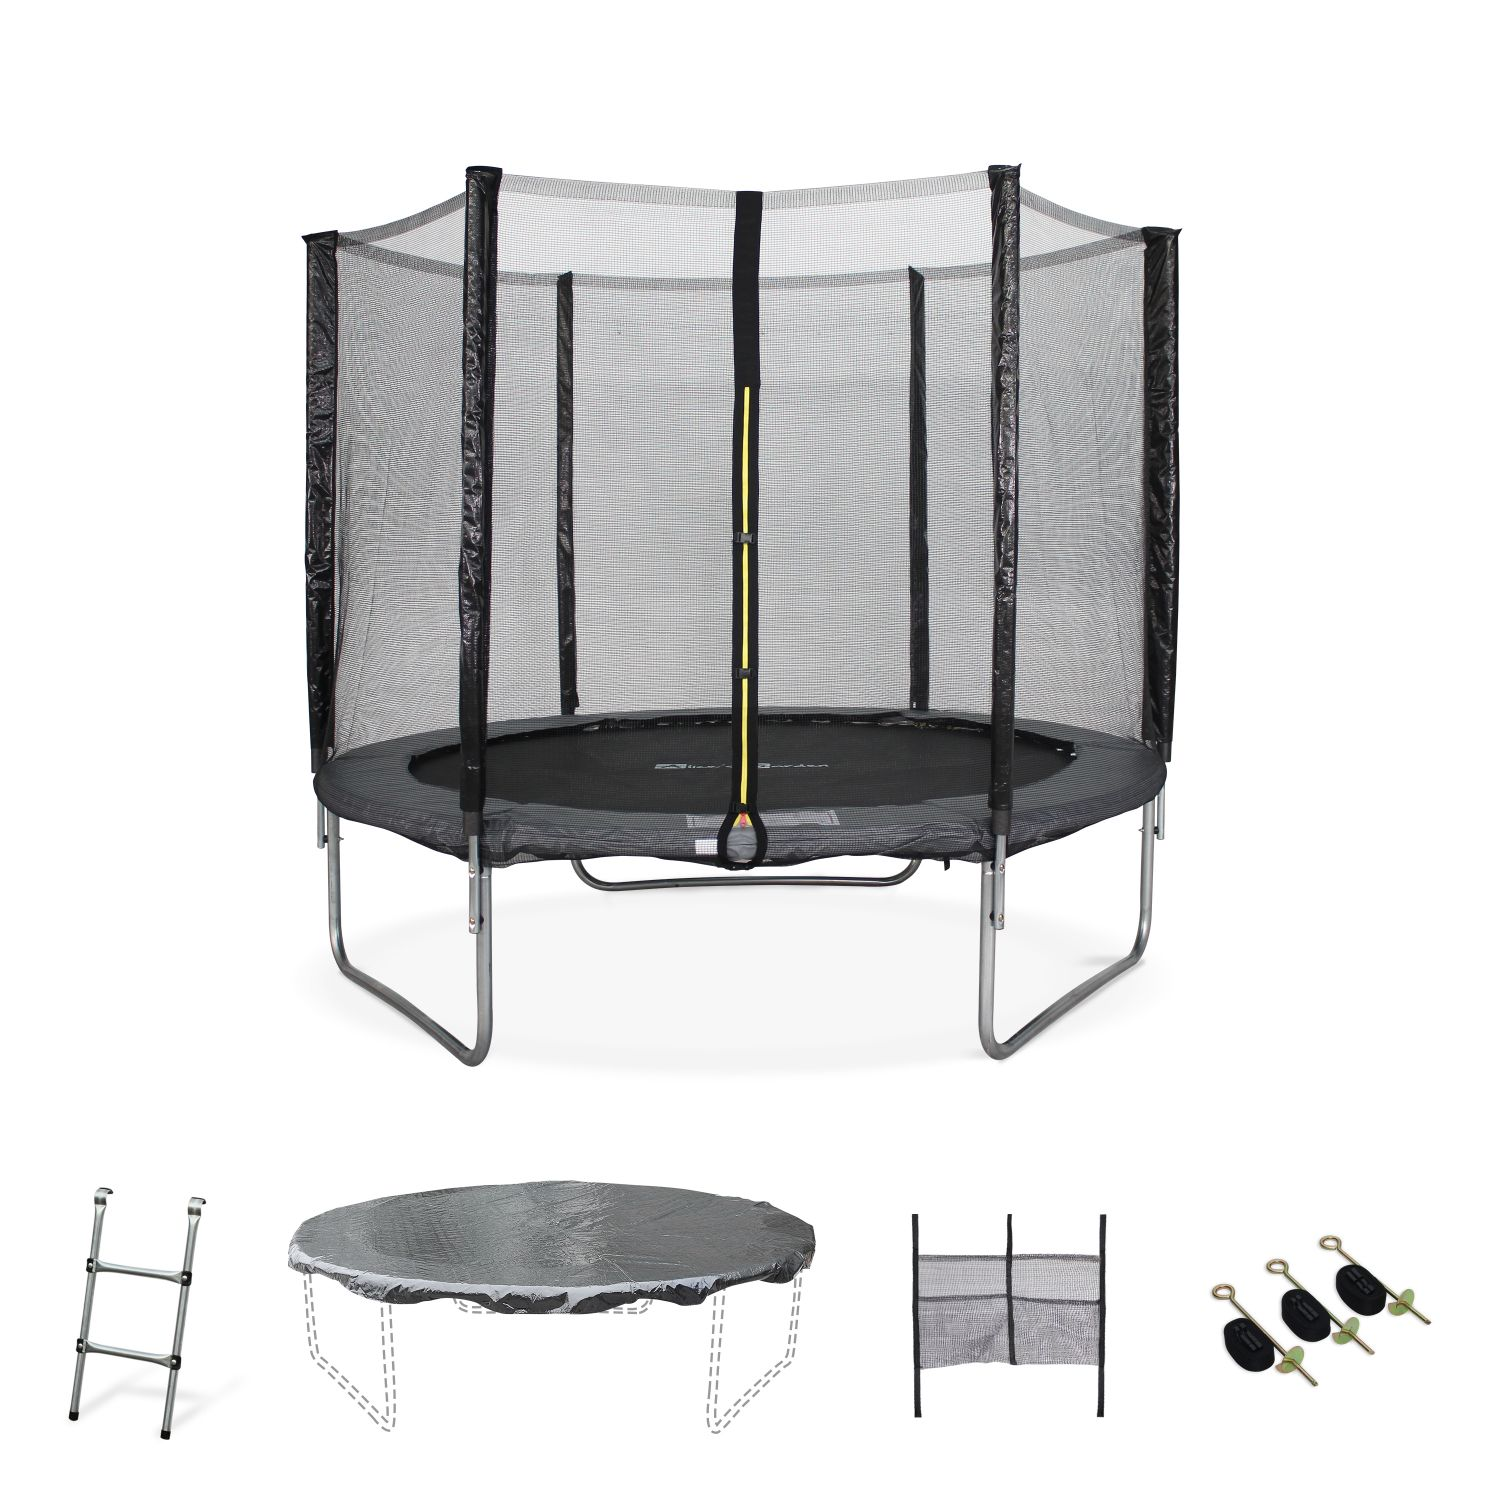 10ft Trampoline with Safety Net & Accessories Kit - Grey - PRO